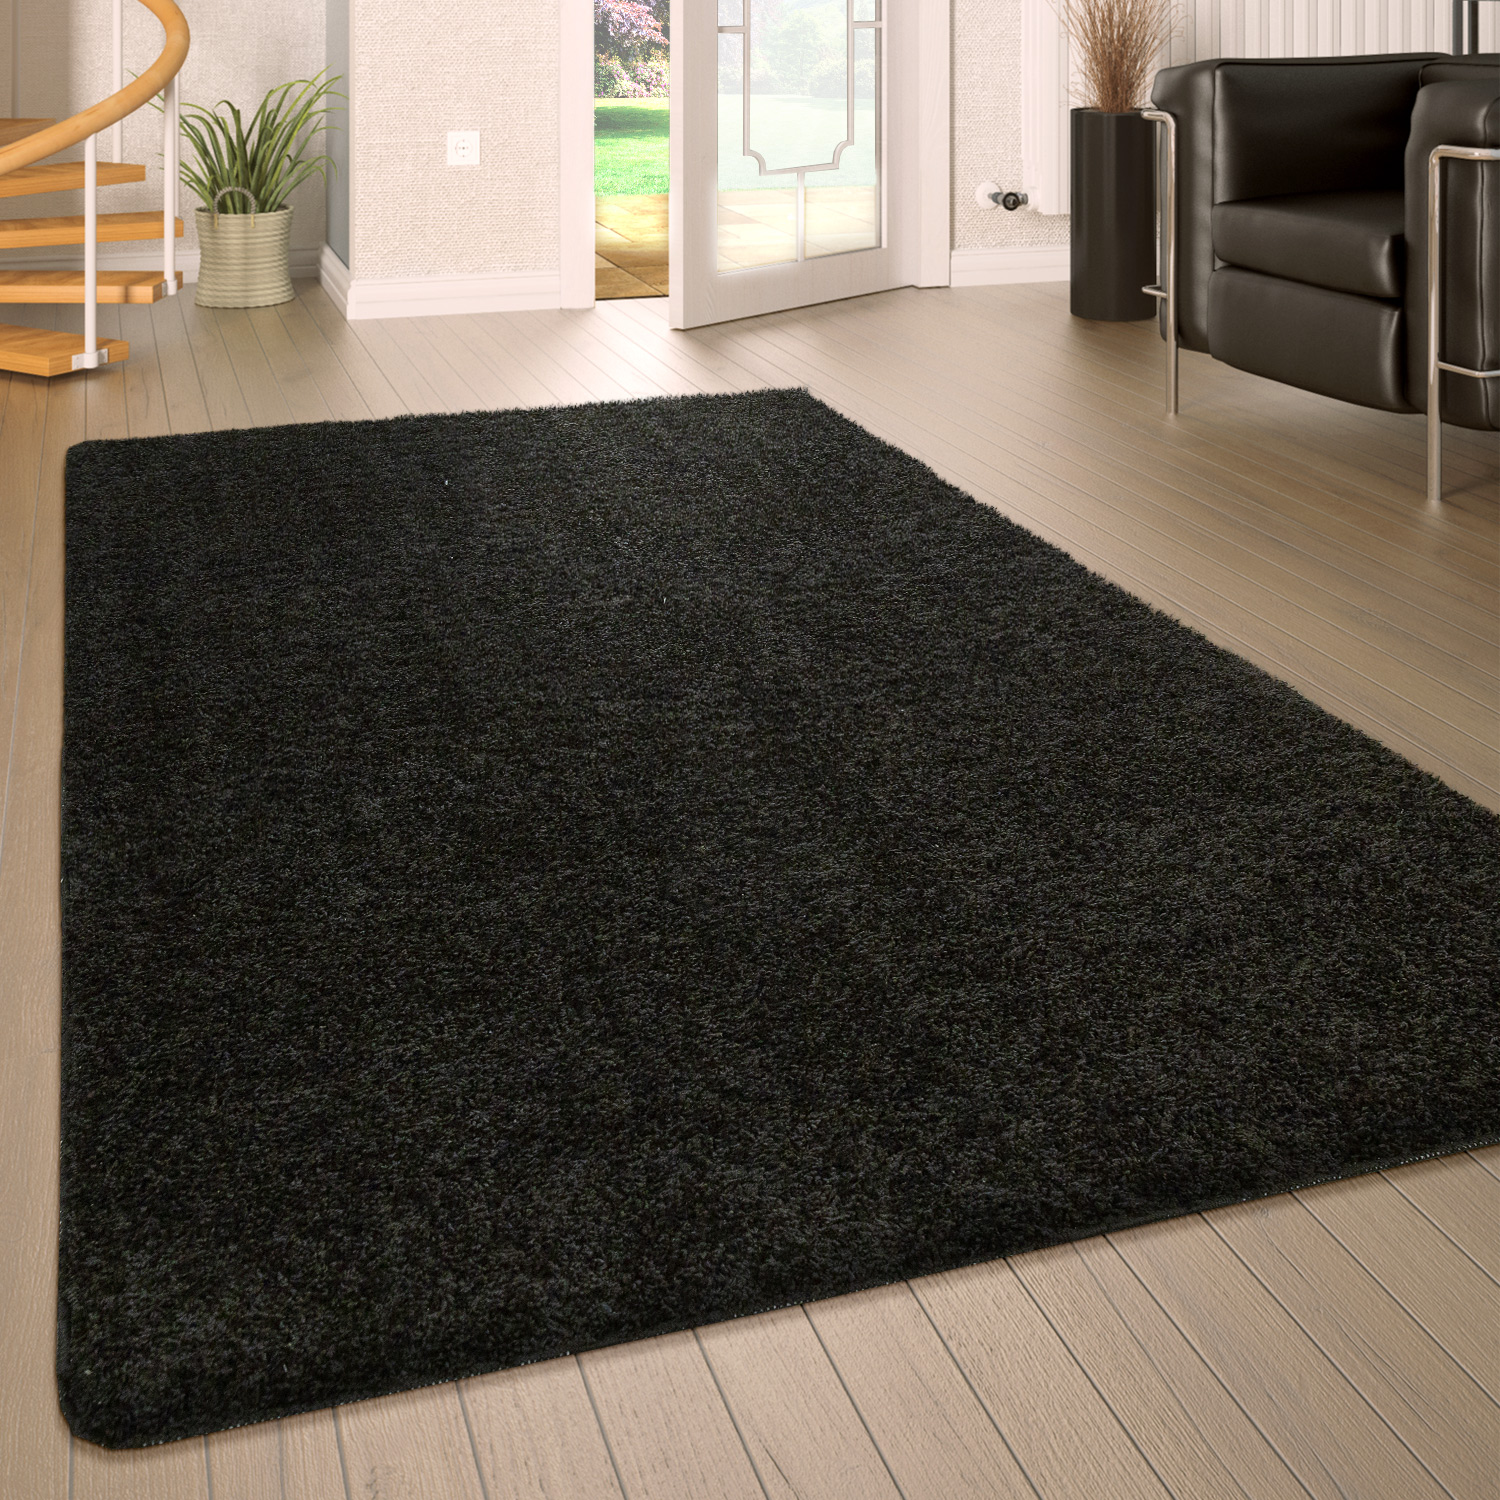 Deep Pile Living Room Rug Washable Shaggy Non-Slip One Colour In Black